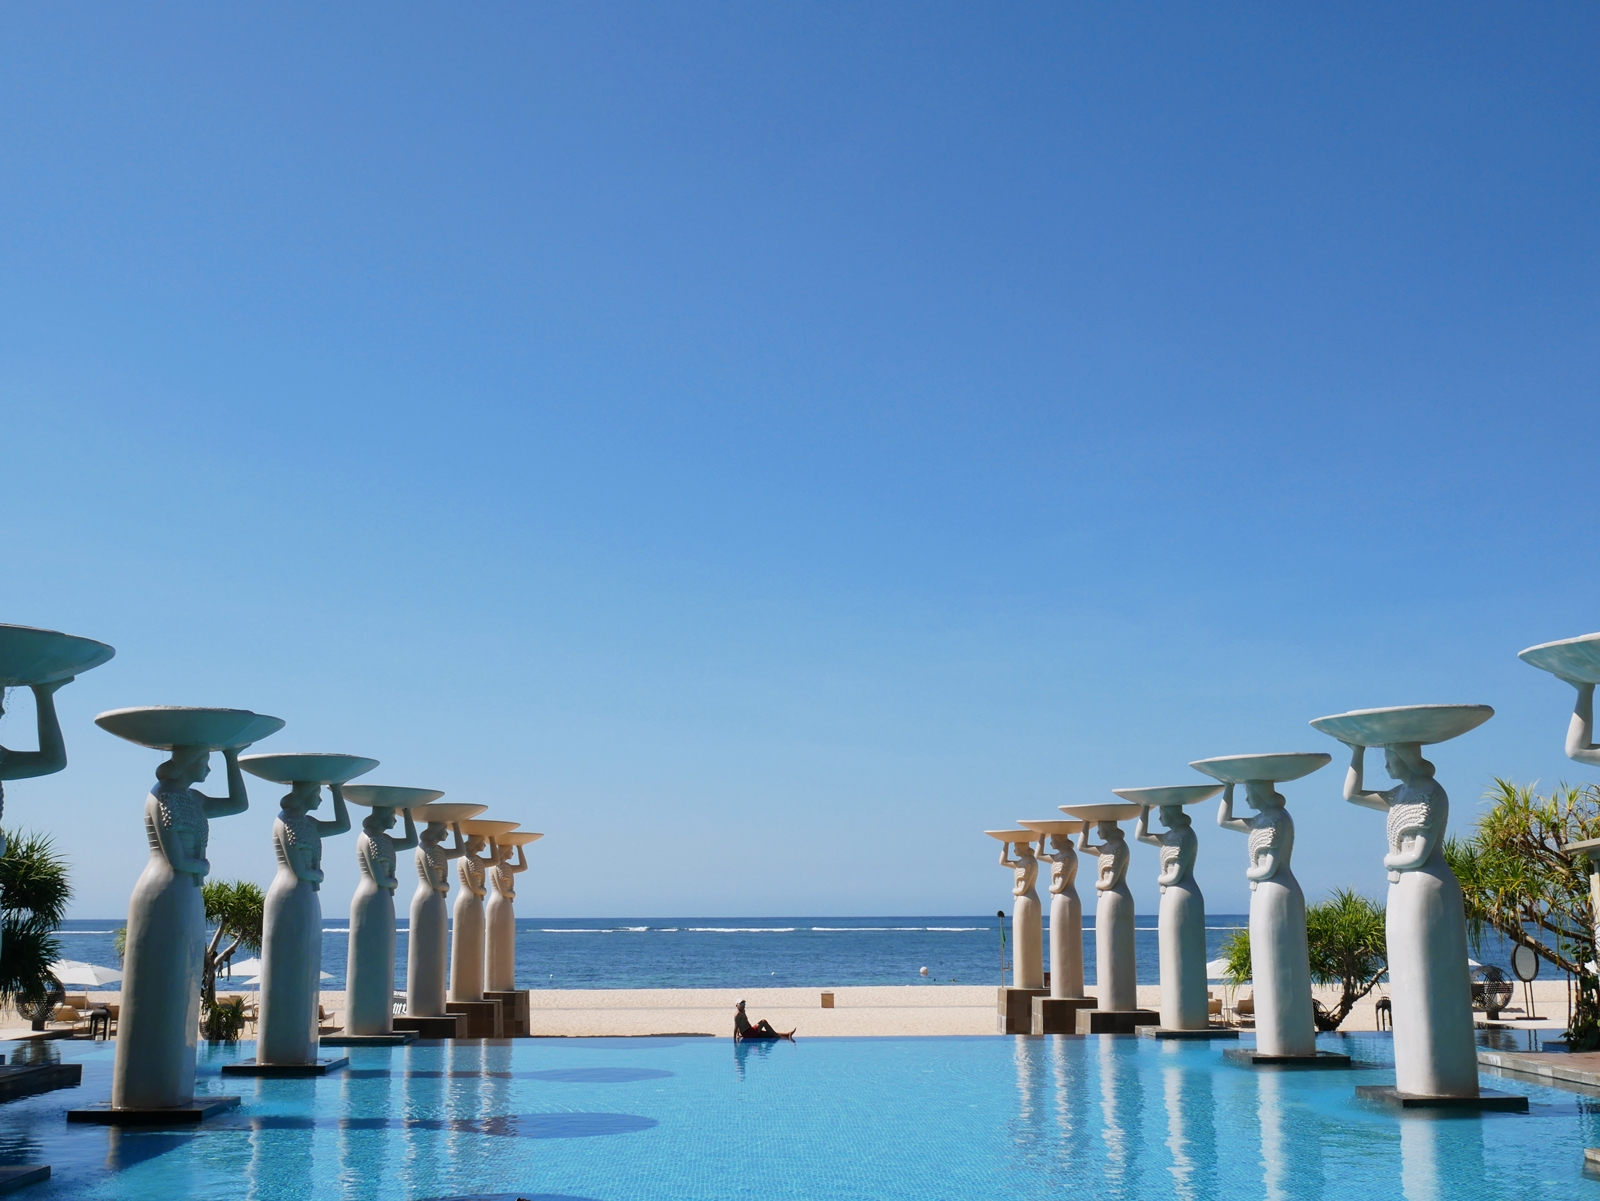 BEST LUXURY HOTEL & RESORT IN BALI - NUSA DUA